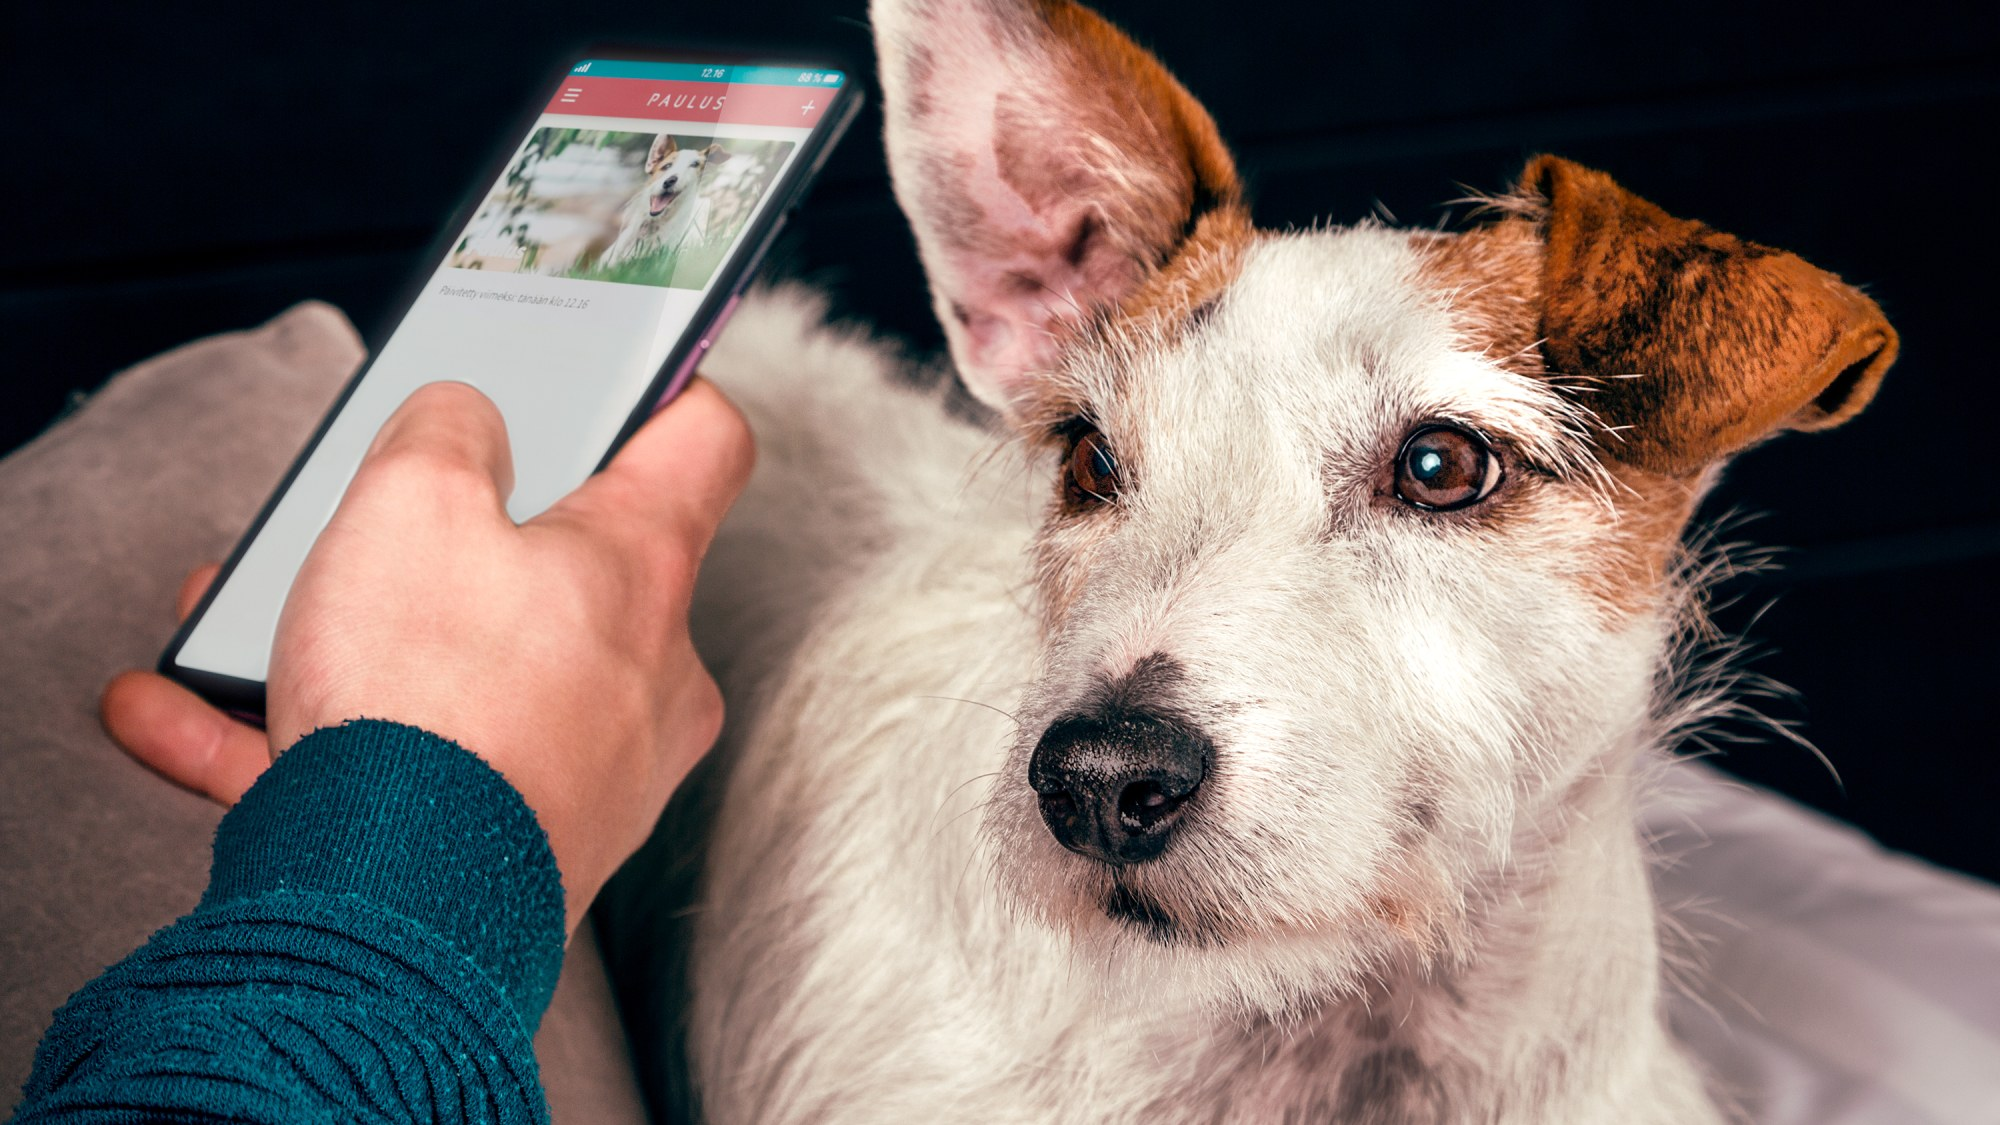 Lost your dog's medical records? Paulus makes them all digital.